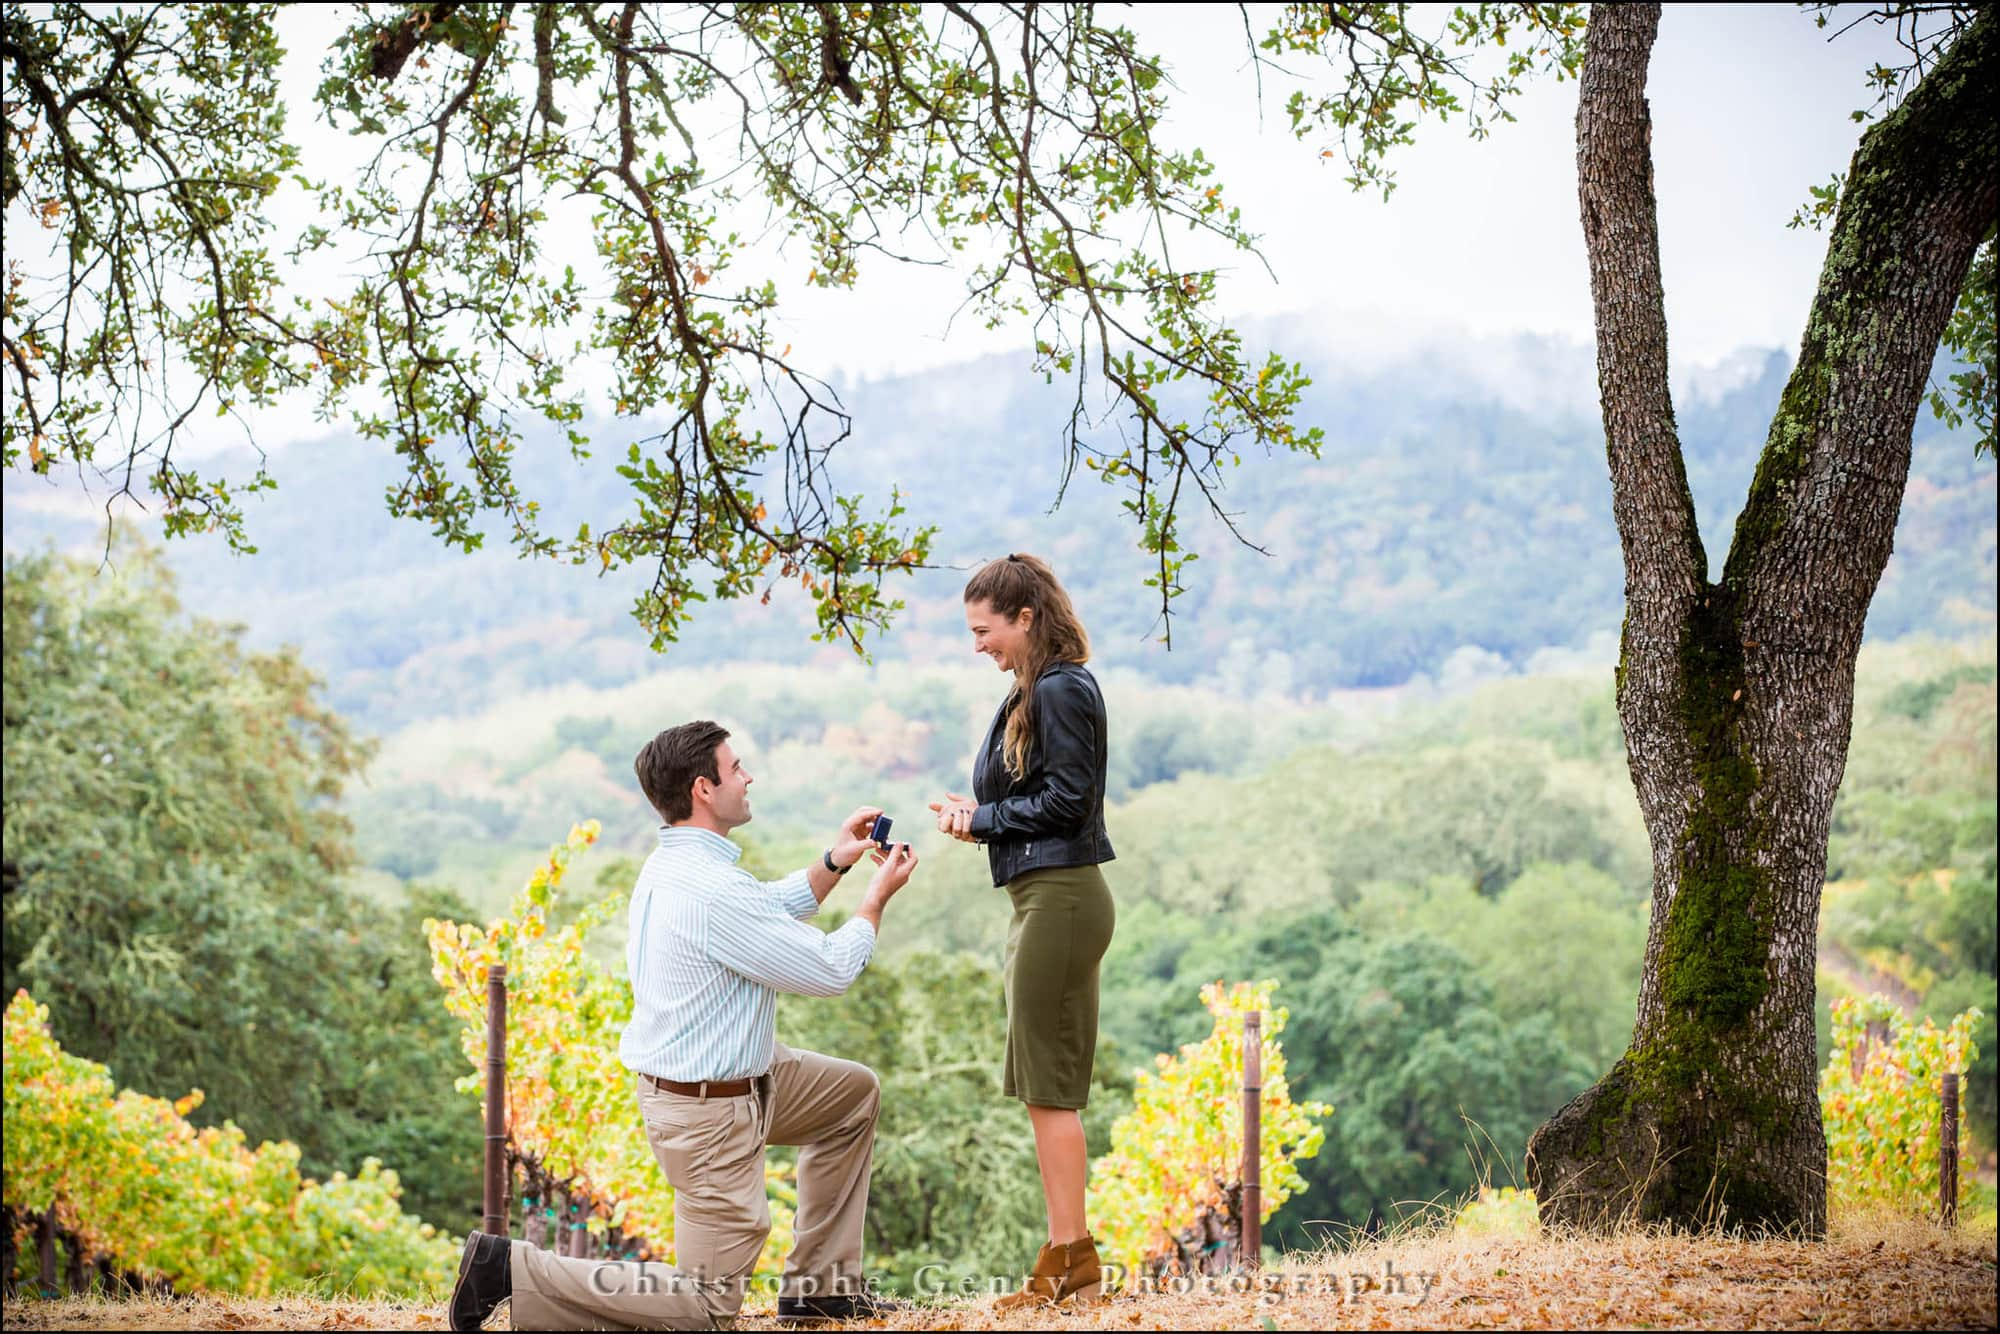 Marriage Proposal Photography In The Napa Valley Buehler Vineyards St Helena Ca